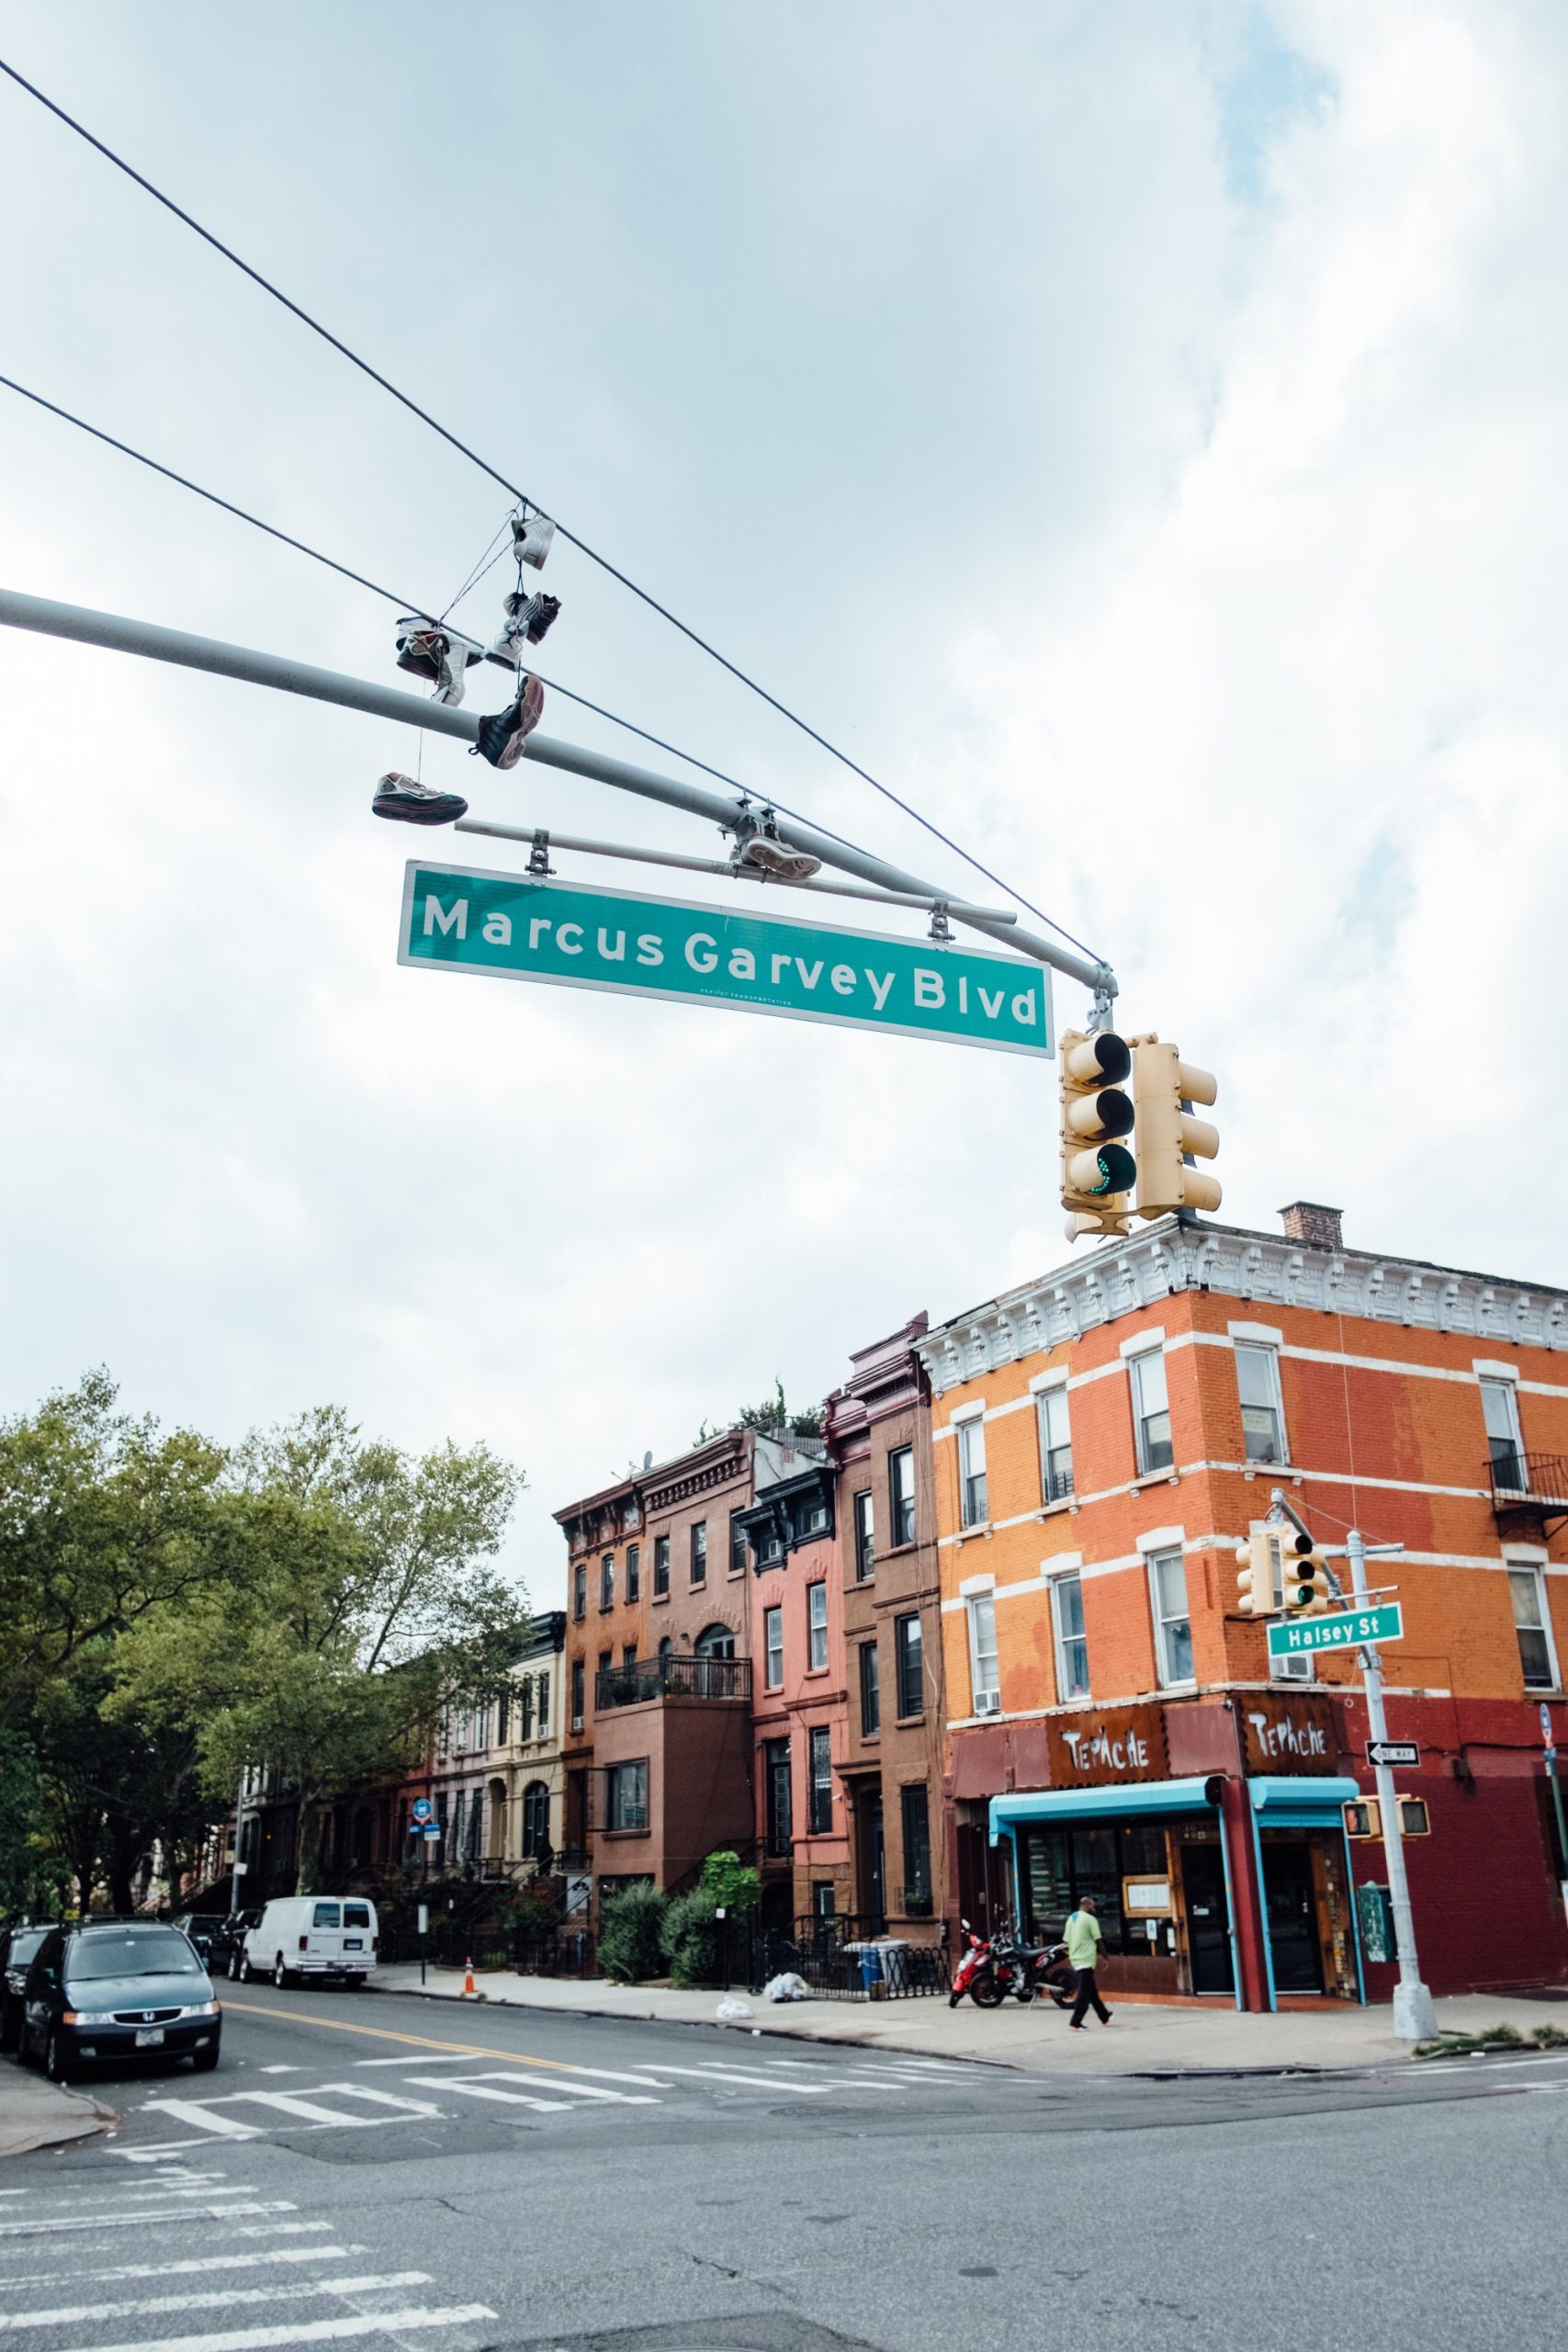 Marcus Garvey Blvd in Brooklyn